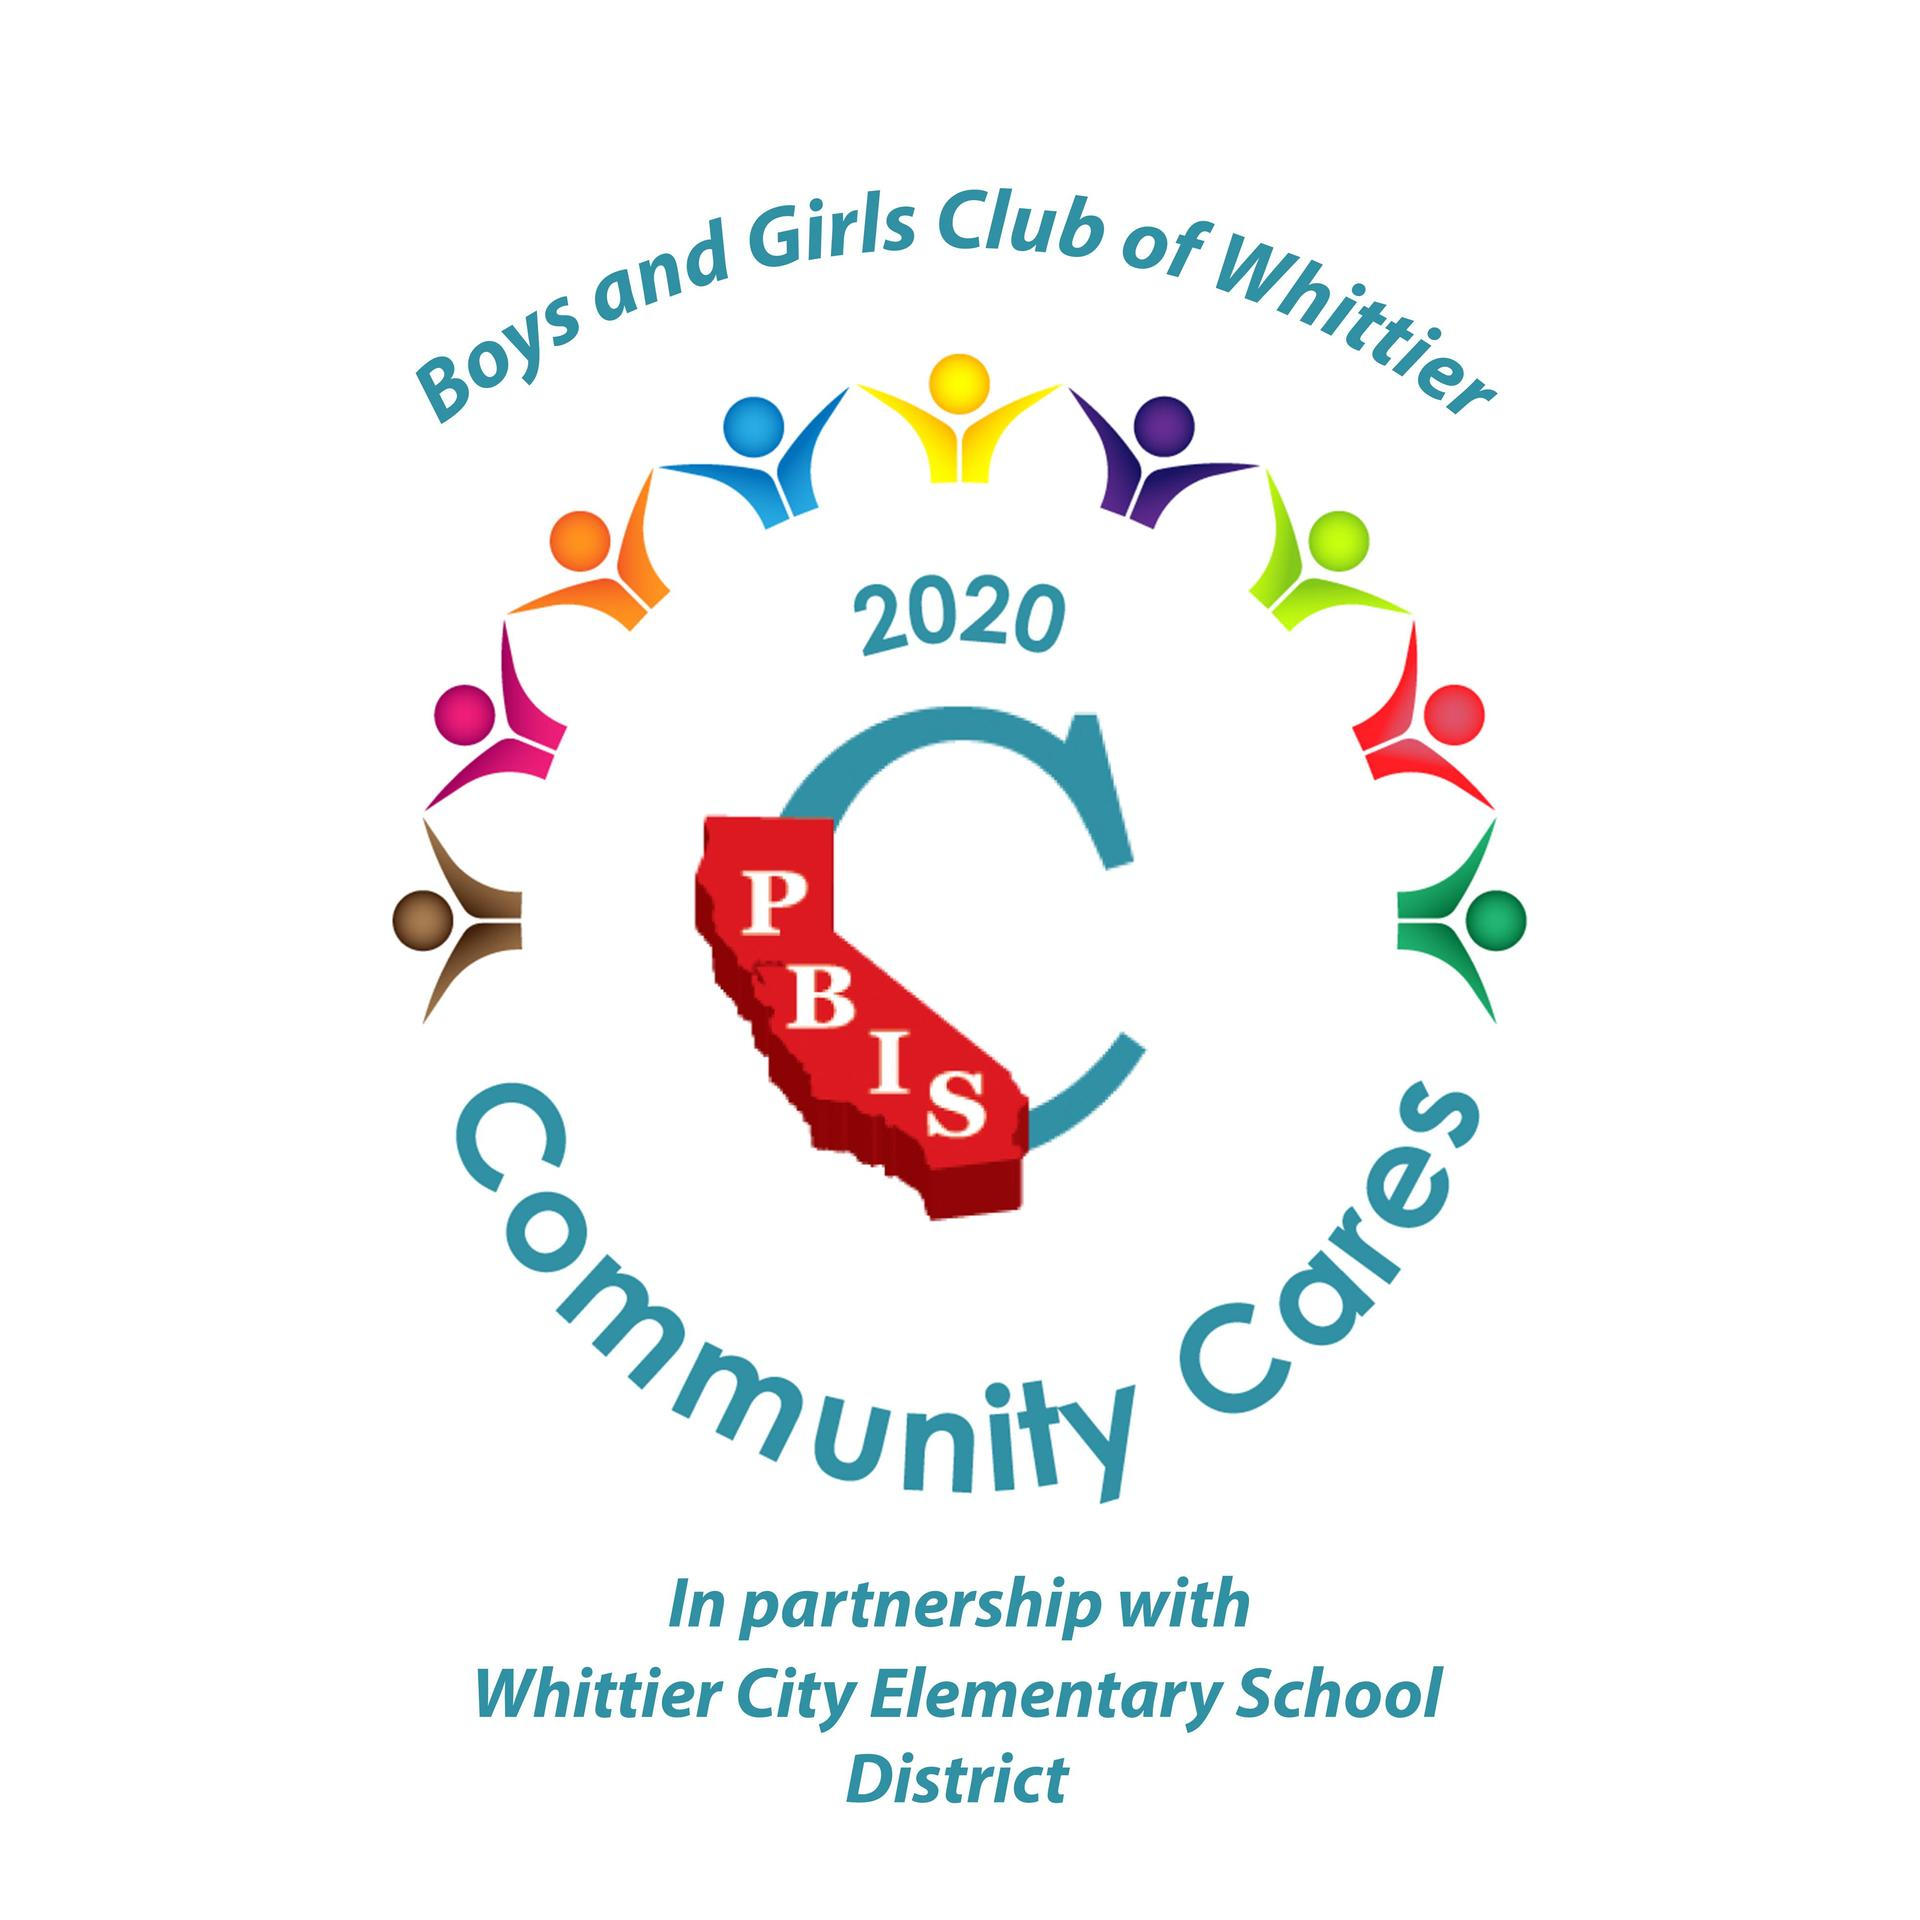 Boys and Girls Club of Whittier